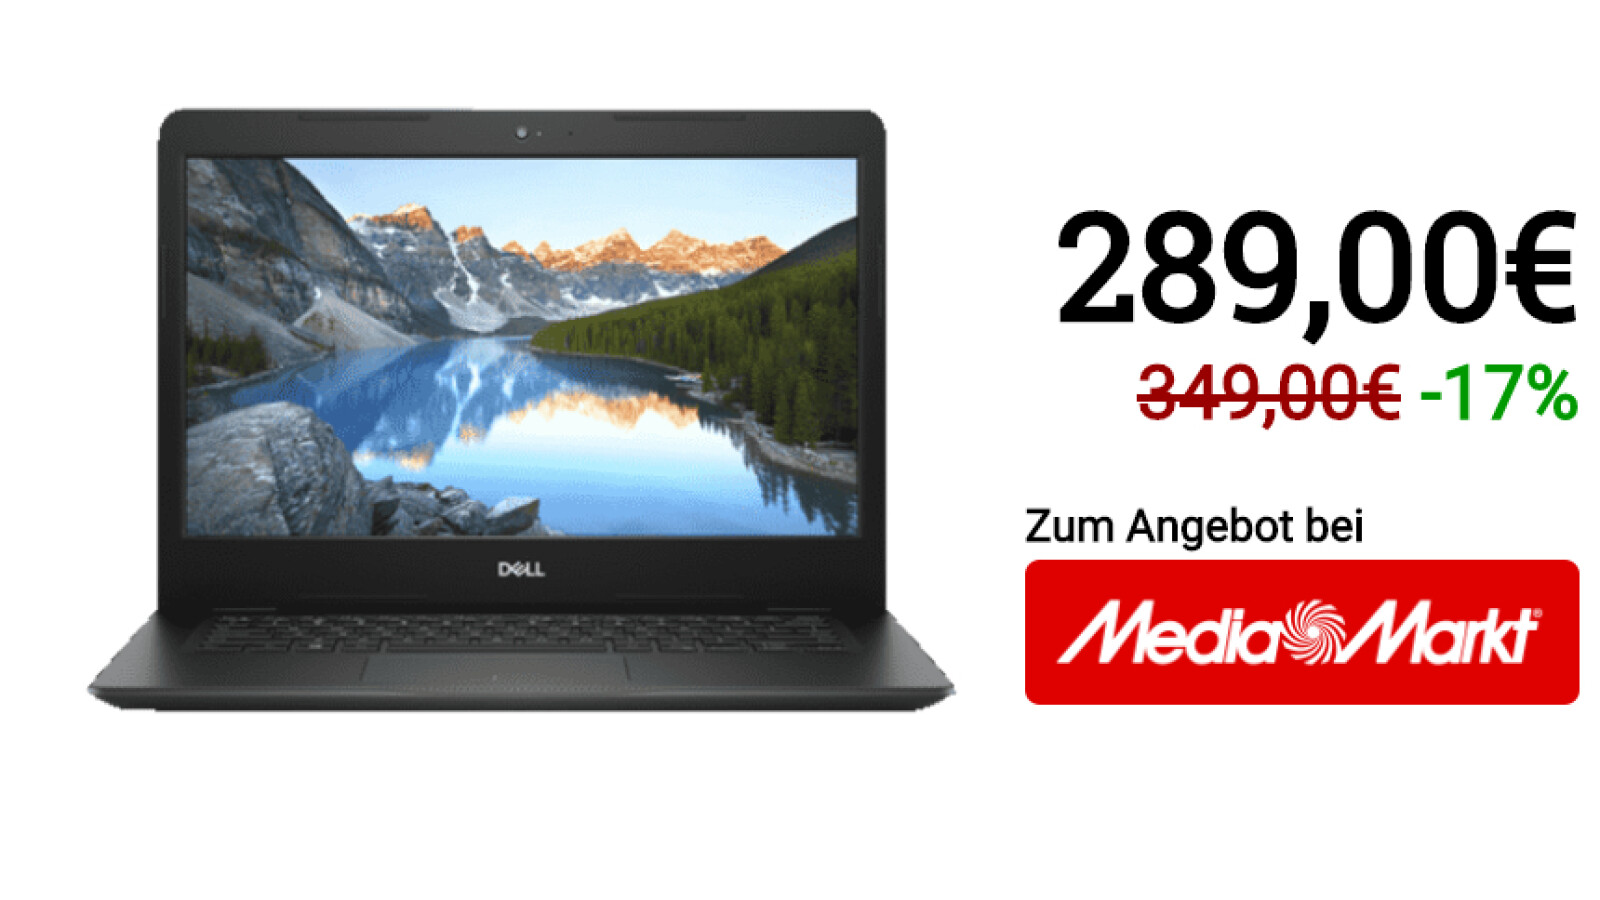 Dell Inspiron Cheap Home Office Laptops From Media Markt Igamesnews